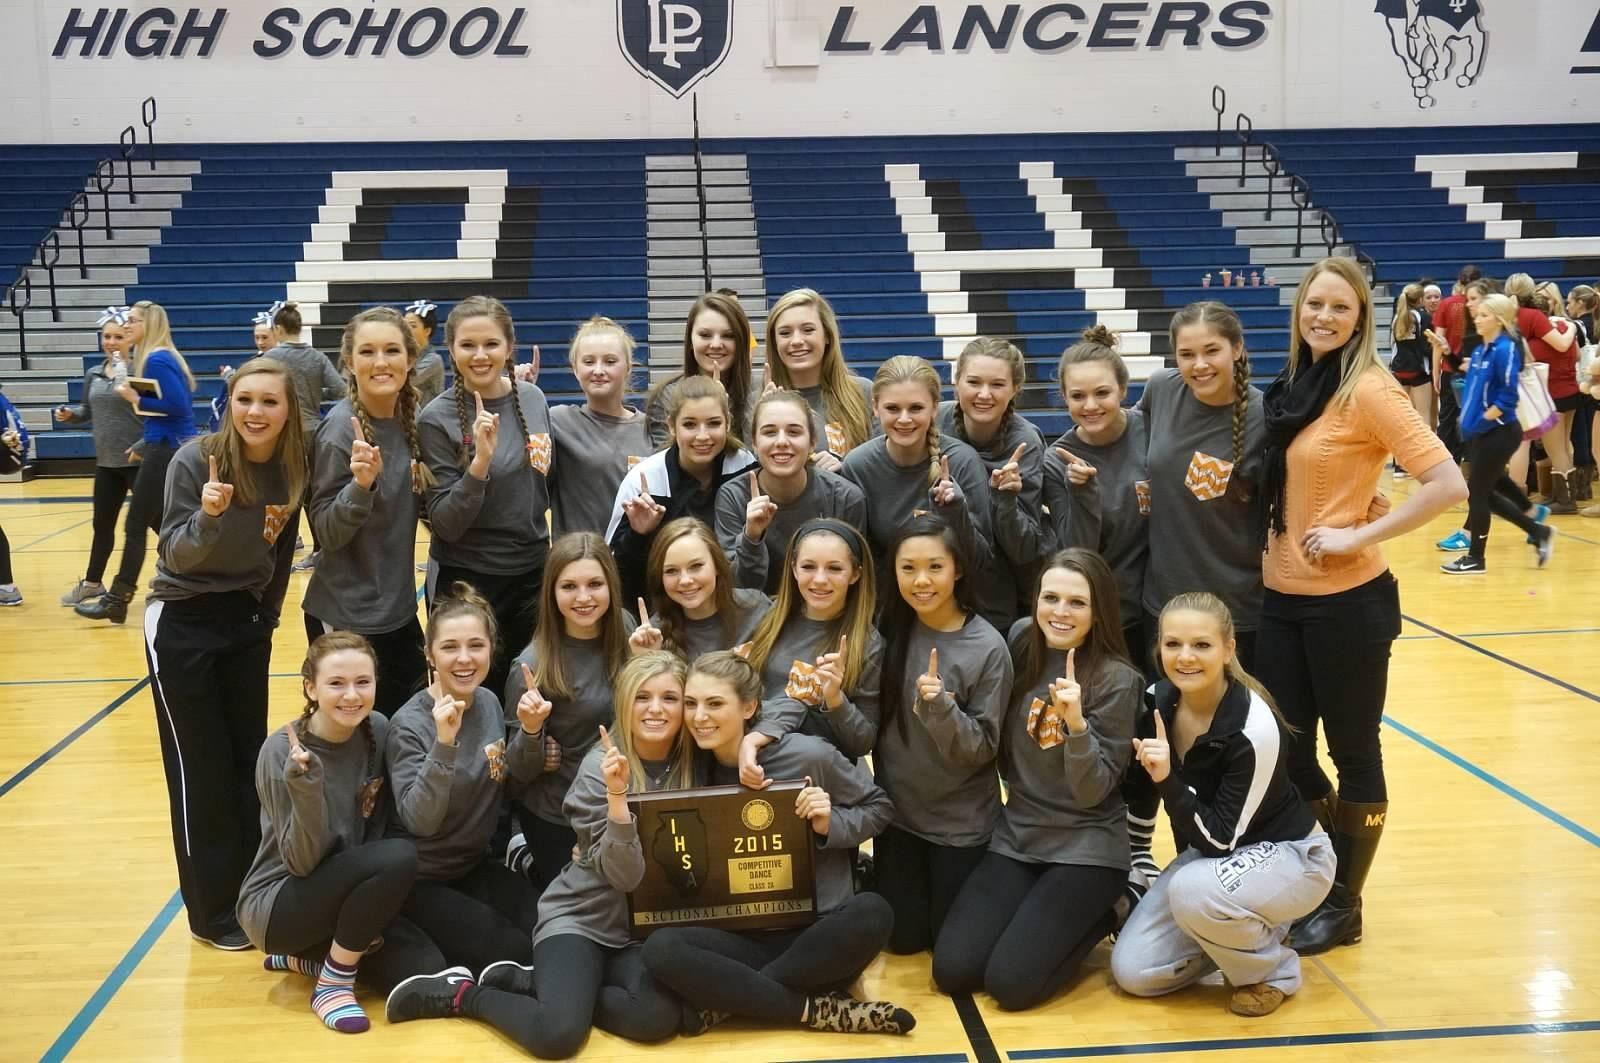 The Varsity Poms team poses with their Sectional Championship Plaque. Photo courtesy of Emily Yates